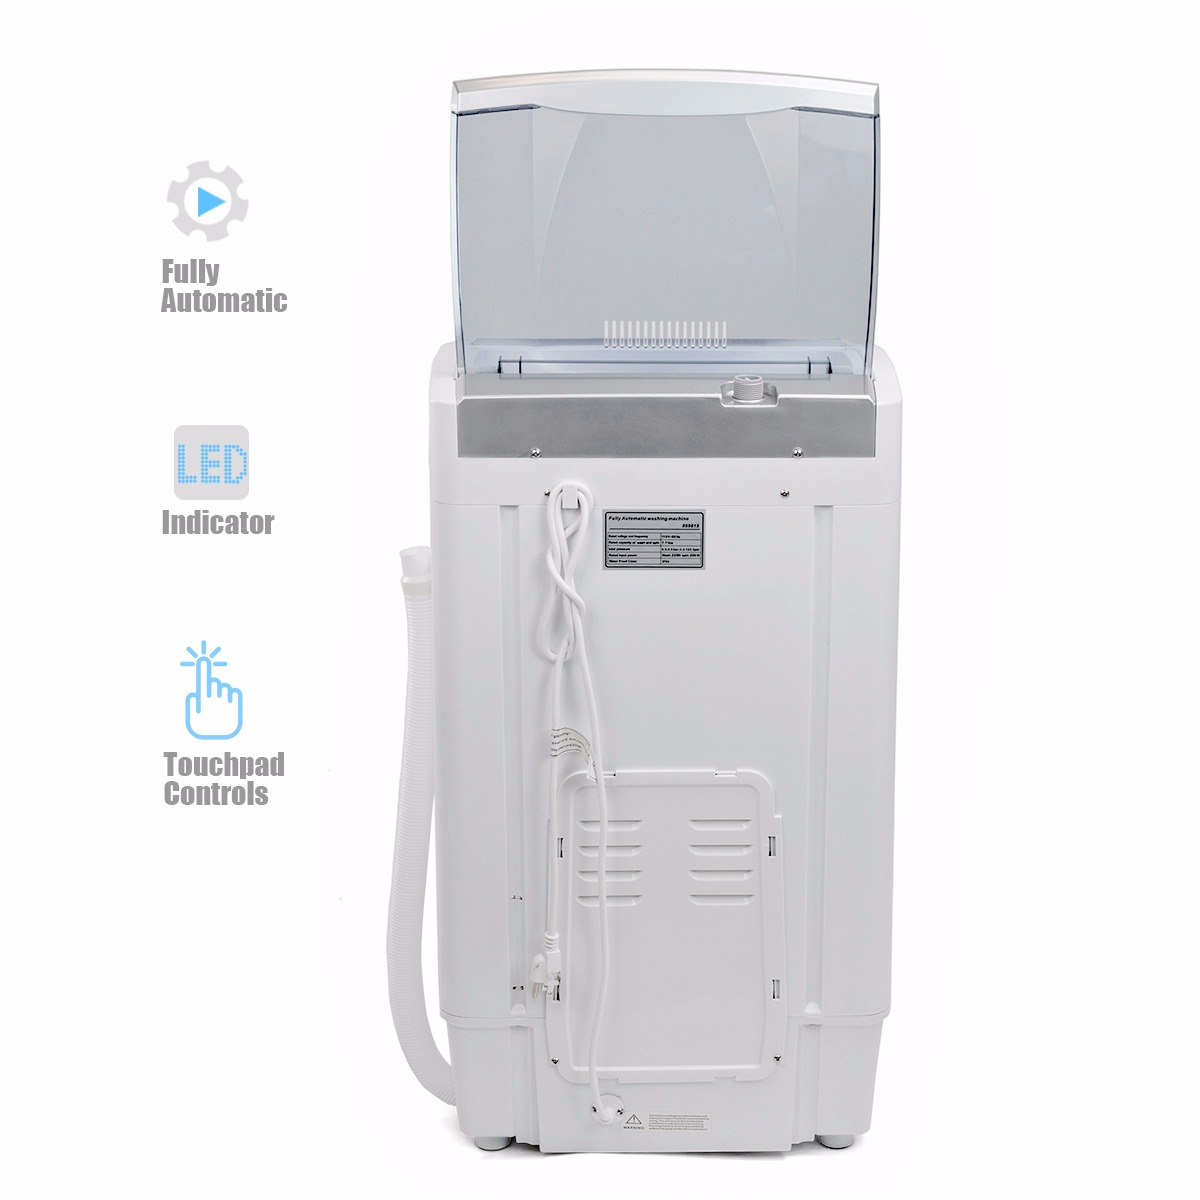 7.7LB Automatic MINI Washer And Spinner Dryer Portable Compact Laundry Combo    Walmart.com